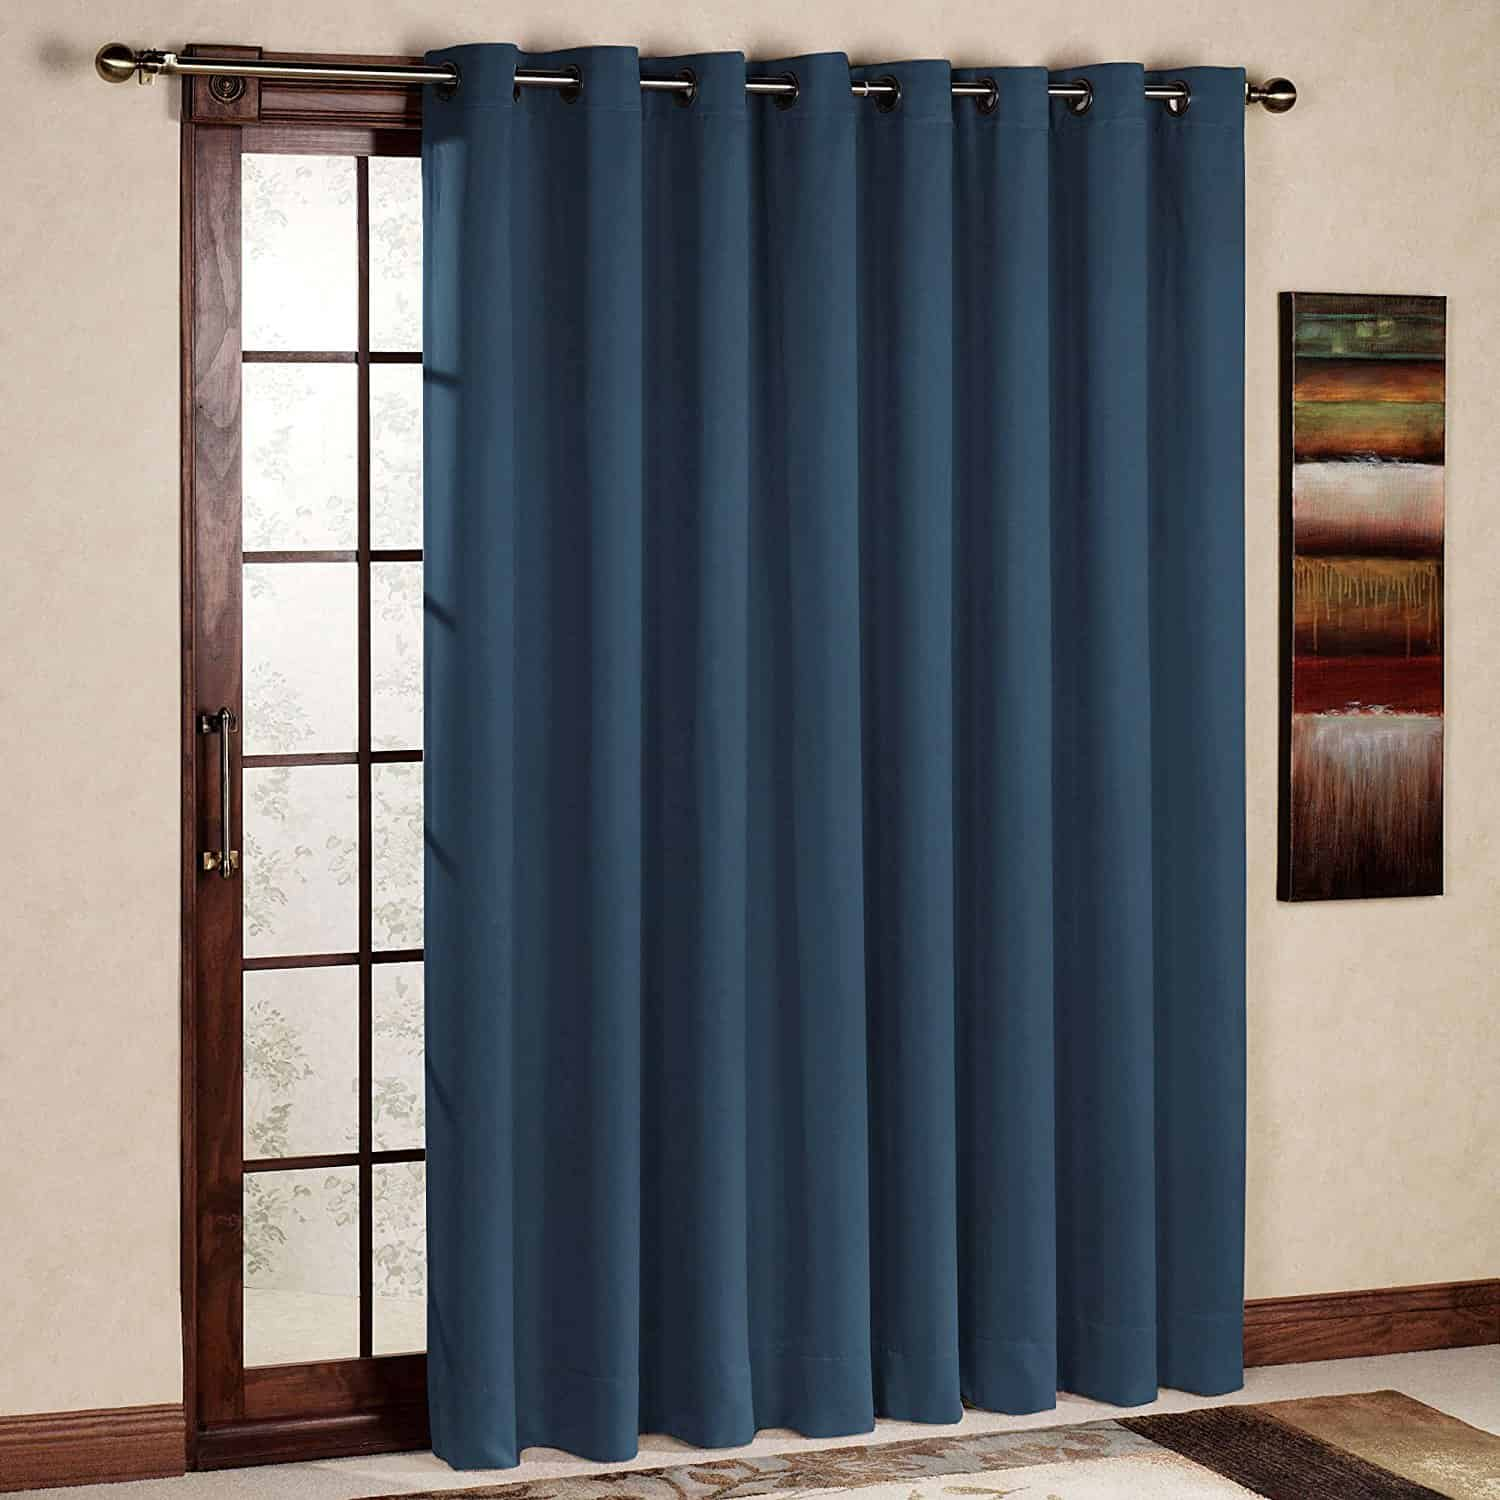 Rhf Wide Thermal Blackout Patio Door Curtain Panel Sliding Curtains Antique Bronze Grommet Top